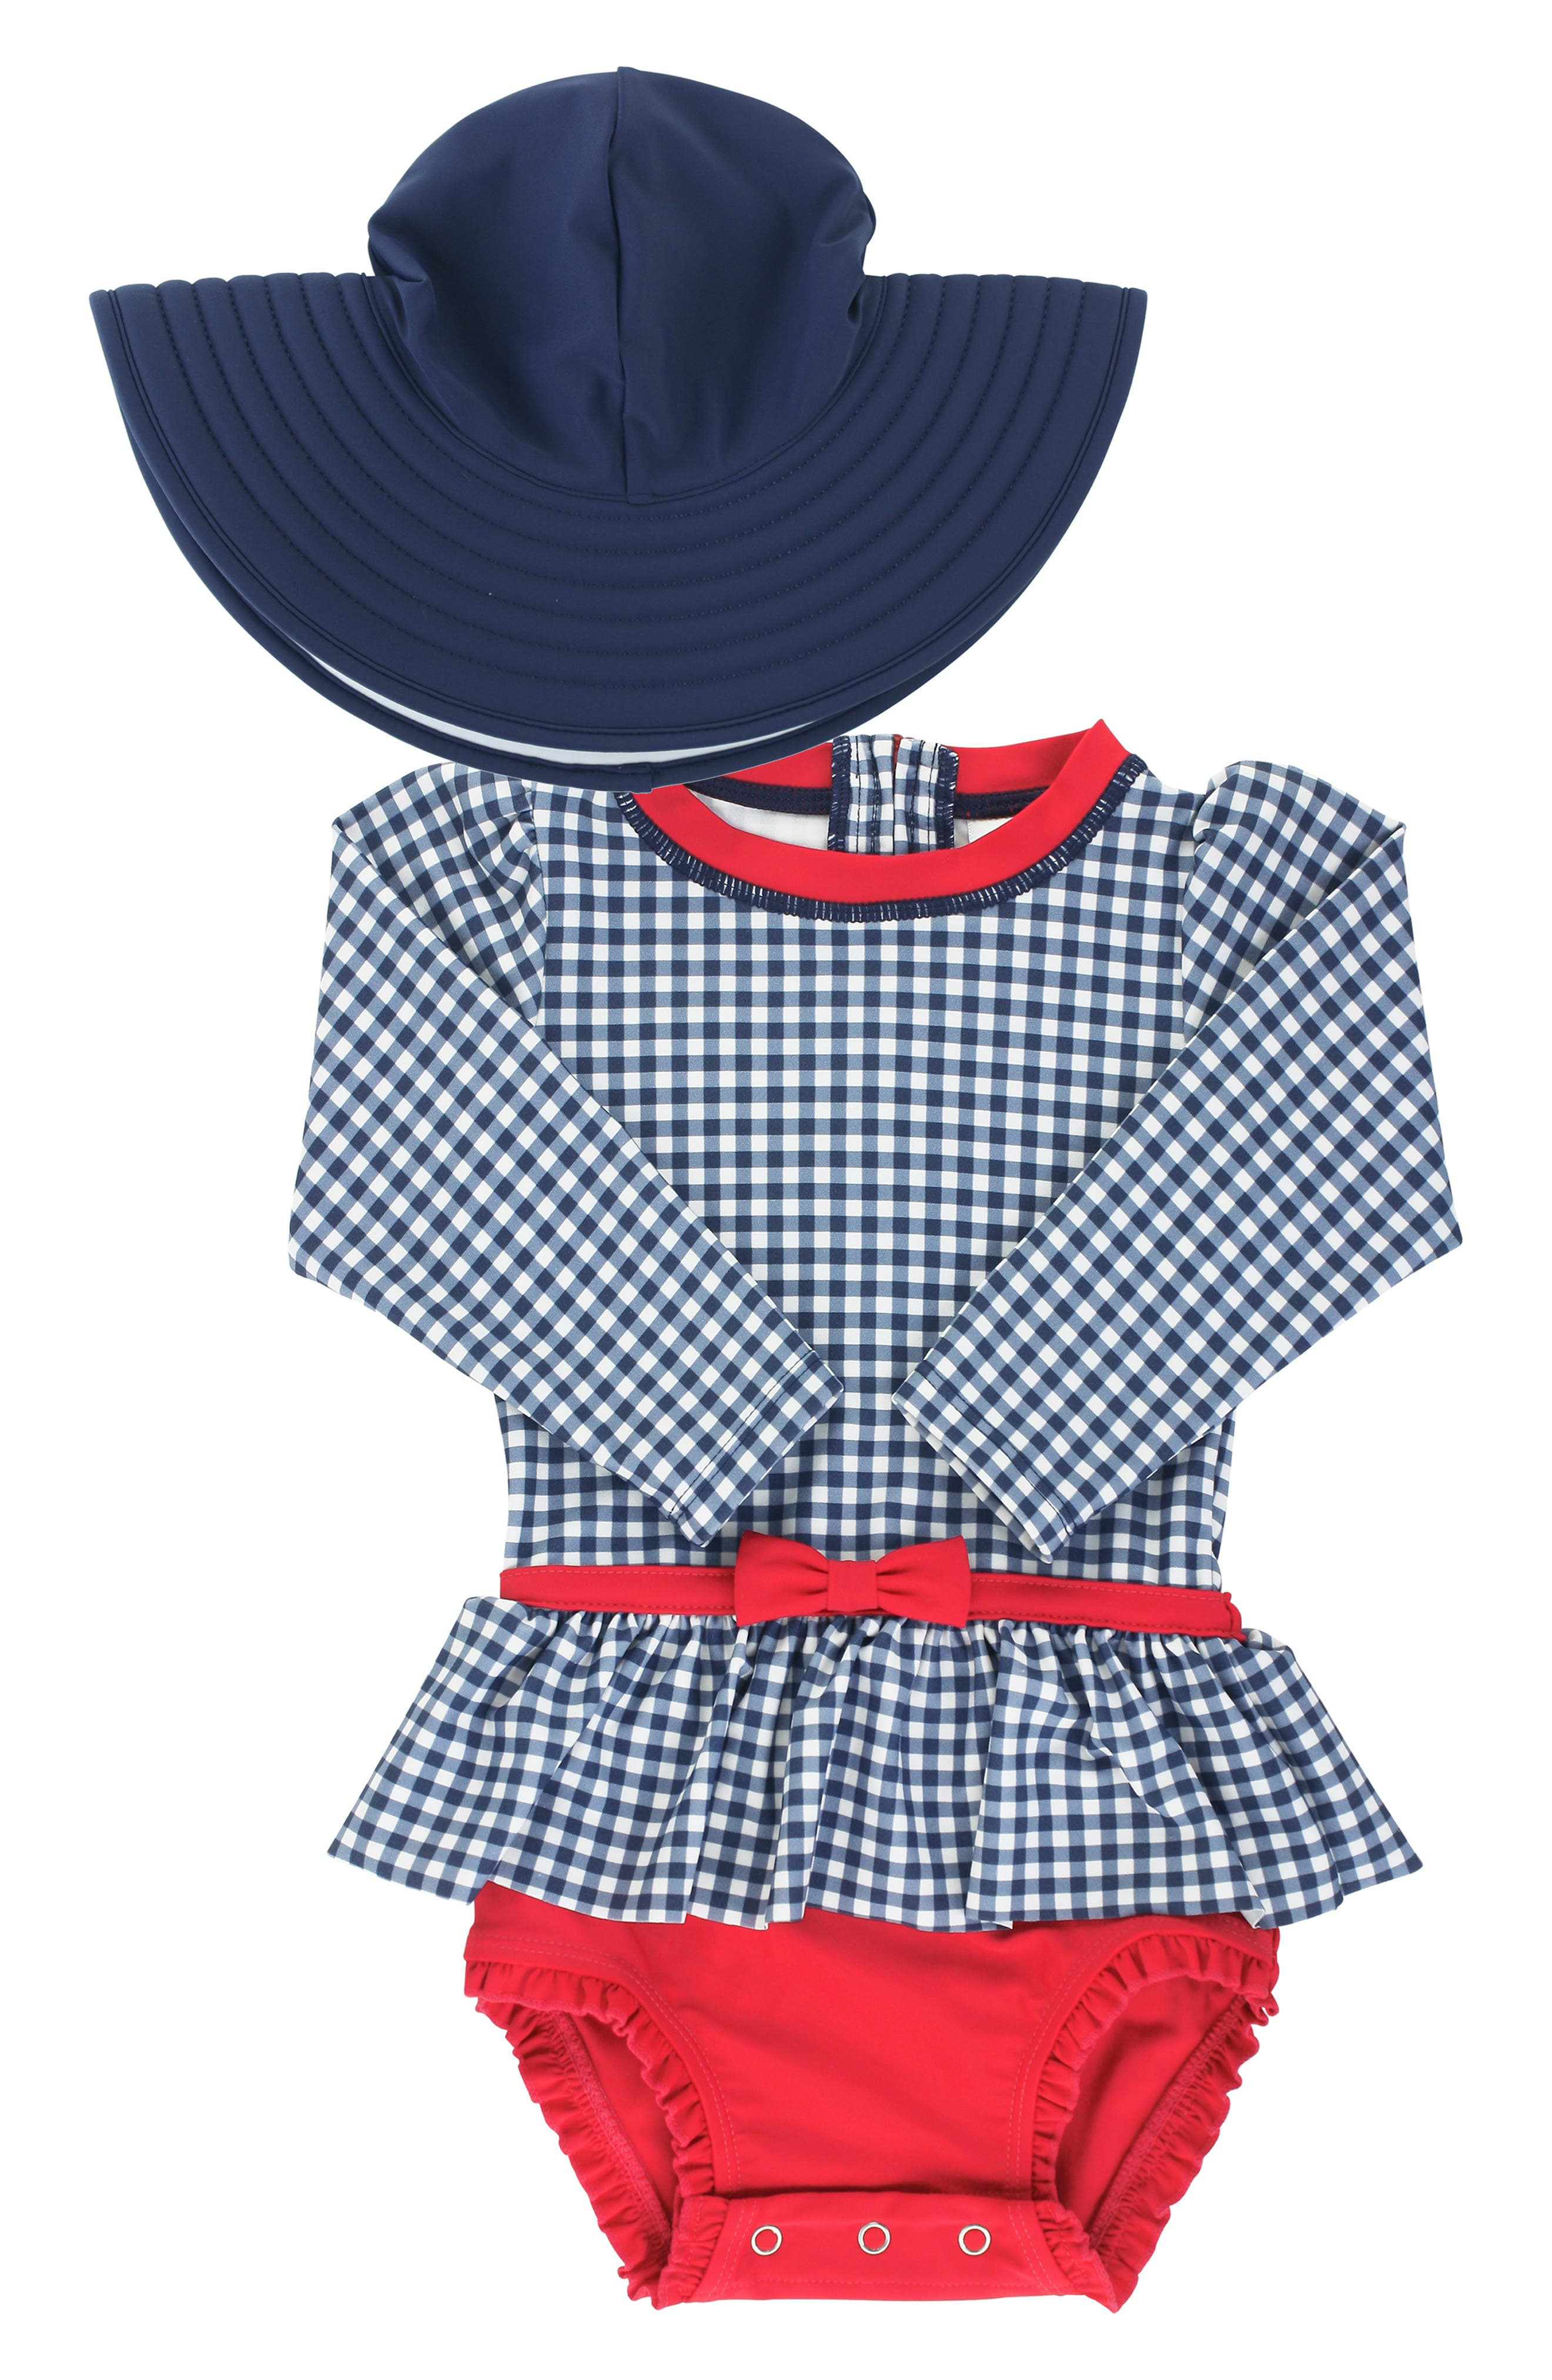 Gingham checks, pops of red and a cute peplum make this one-piece swimsuit a beachy fave, while the matching floppy hat provides extra sun protection. Style Name: Rufflebutts Skirted One-Piece Rashguard Swimsuit & Reversible Floppy Hat Set (Baby). Style Number: 5938577. Available in stores.